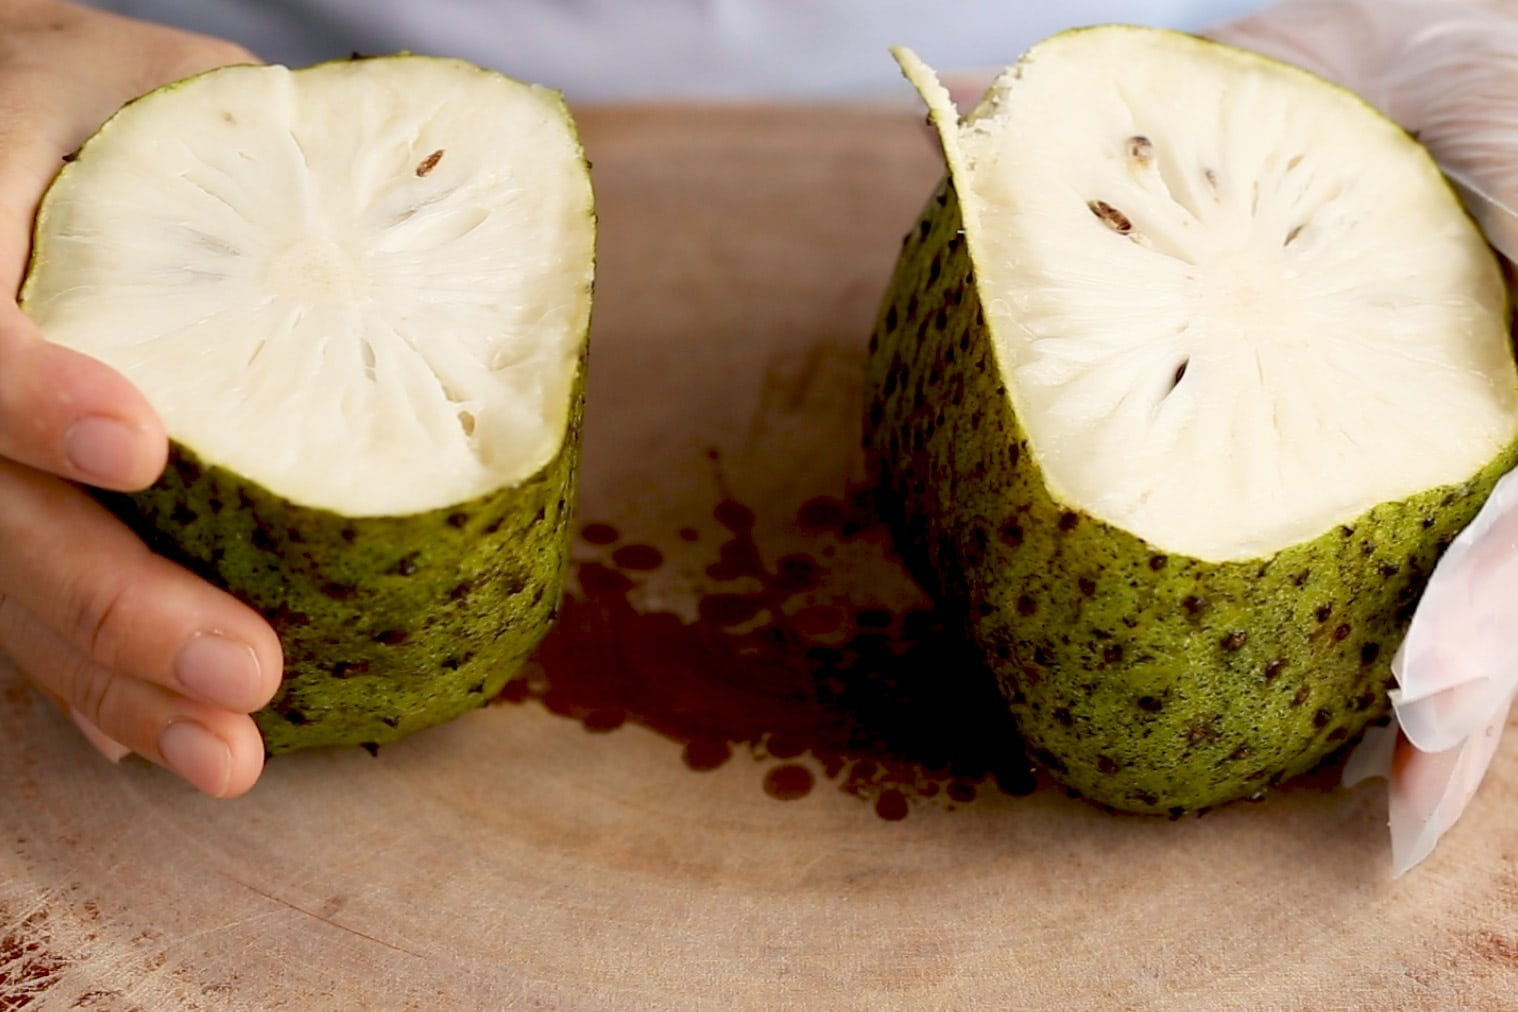 a soursop fruit